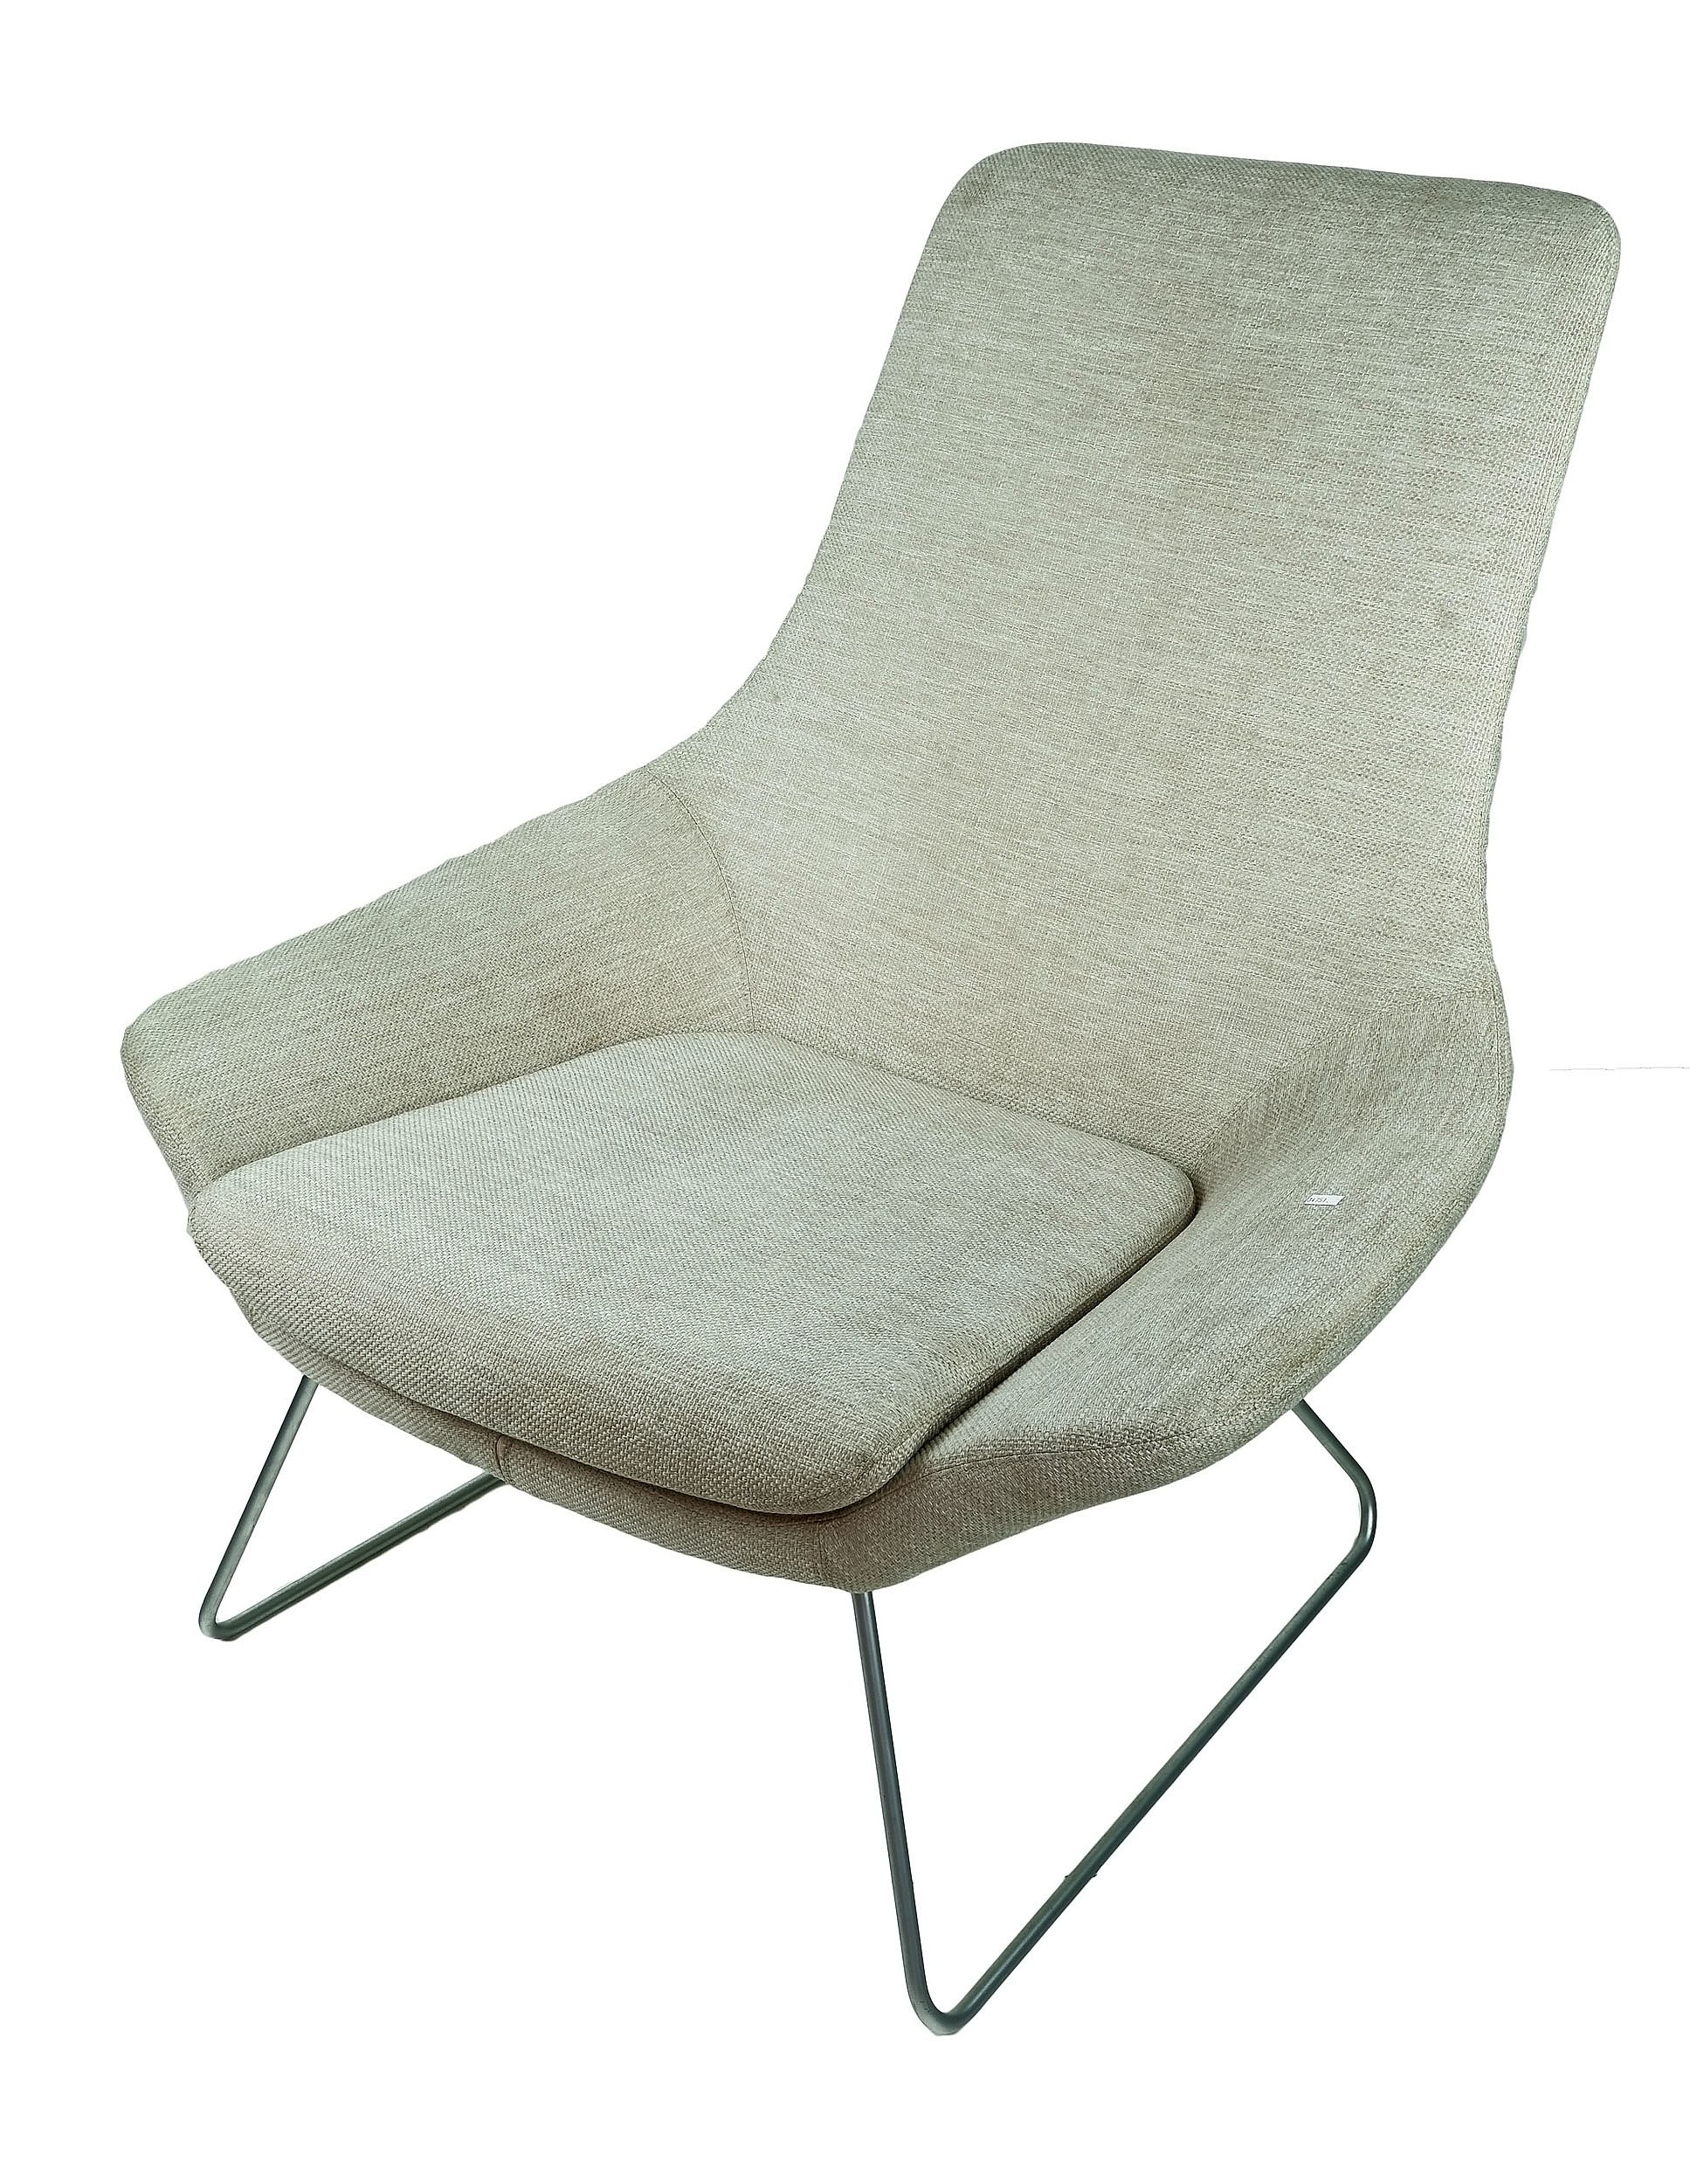 'Walter Knoll Flow Chair Designed by Pearson Lloyd'